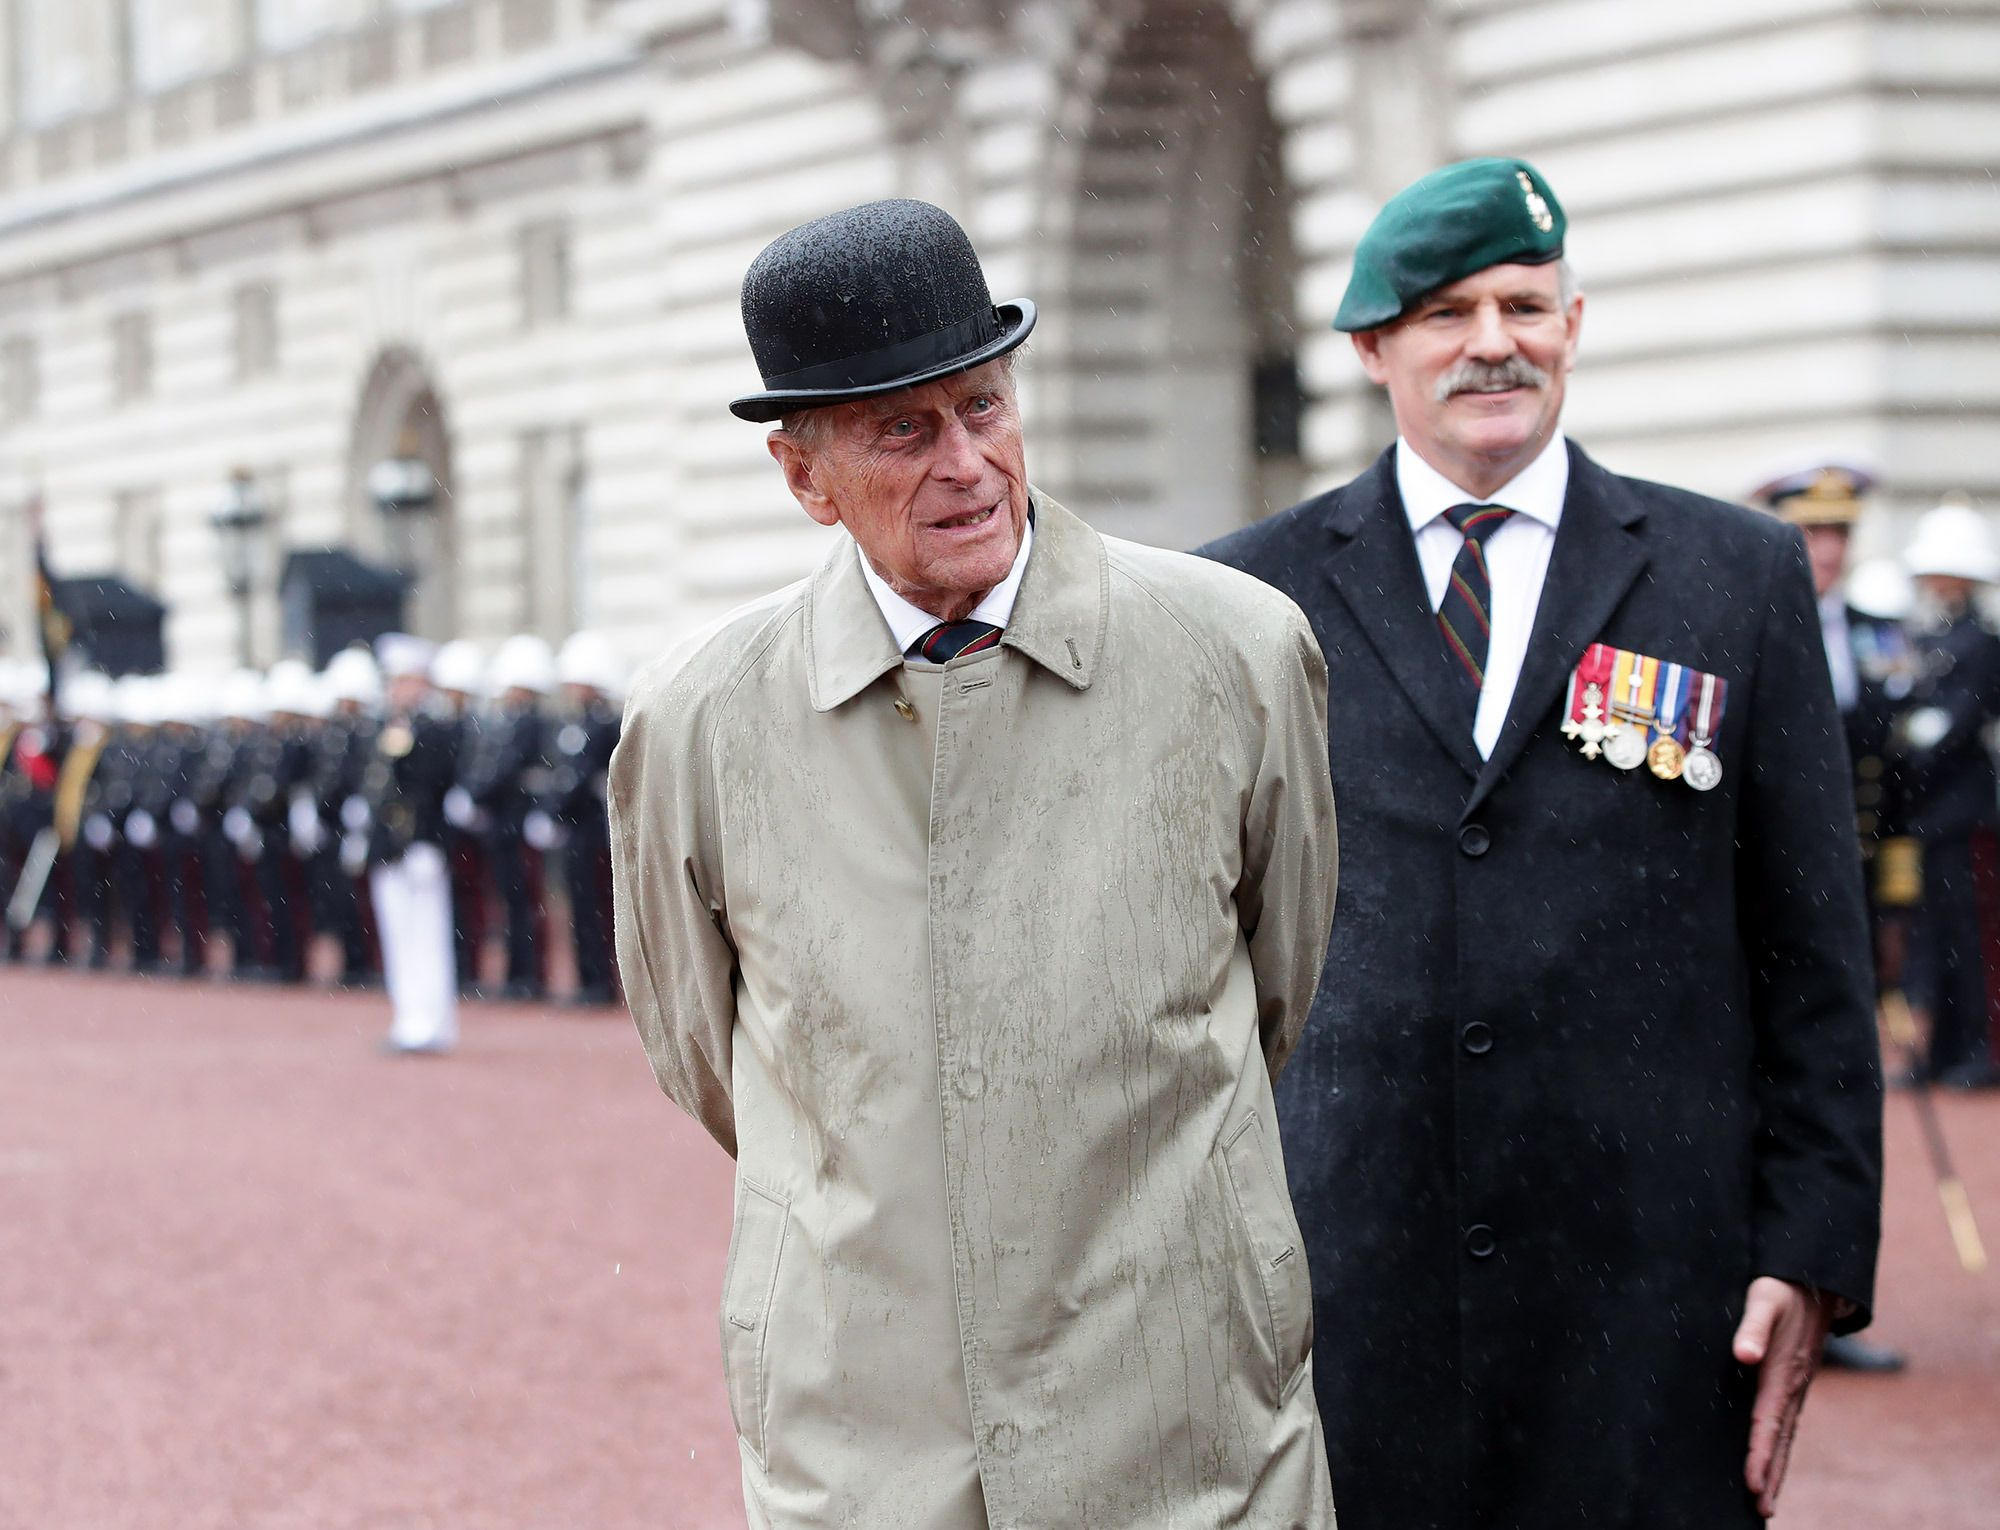 Prince Philip Retires After Attending Final Public Royal Engagement Prince Philip Royal Family Queen Elizabeth Ii